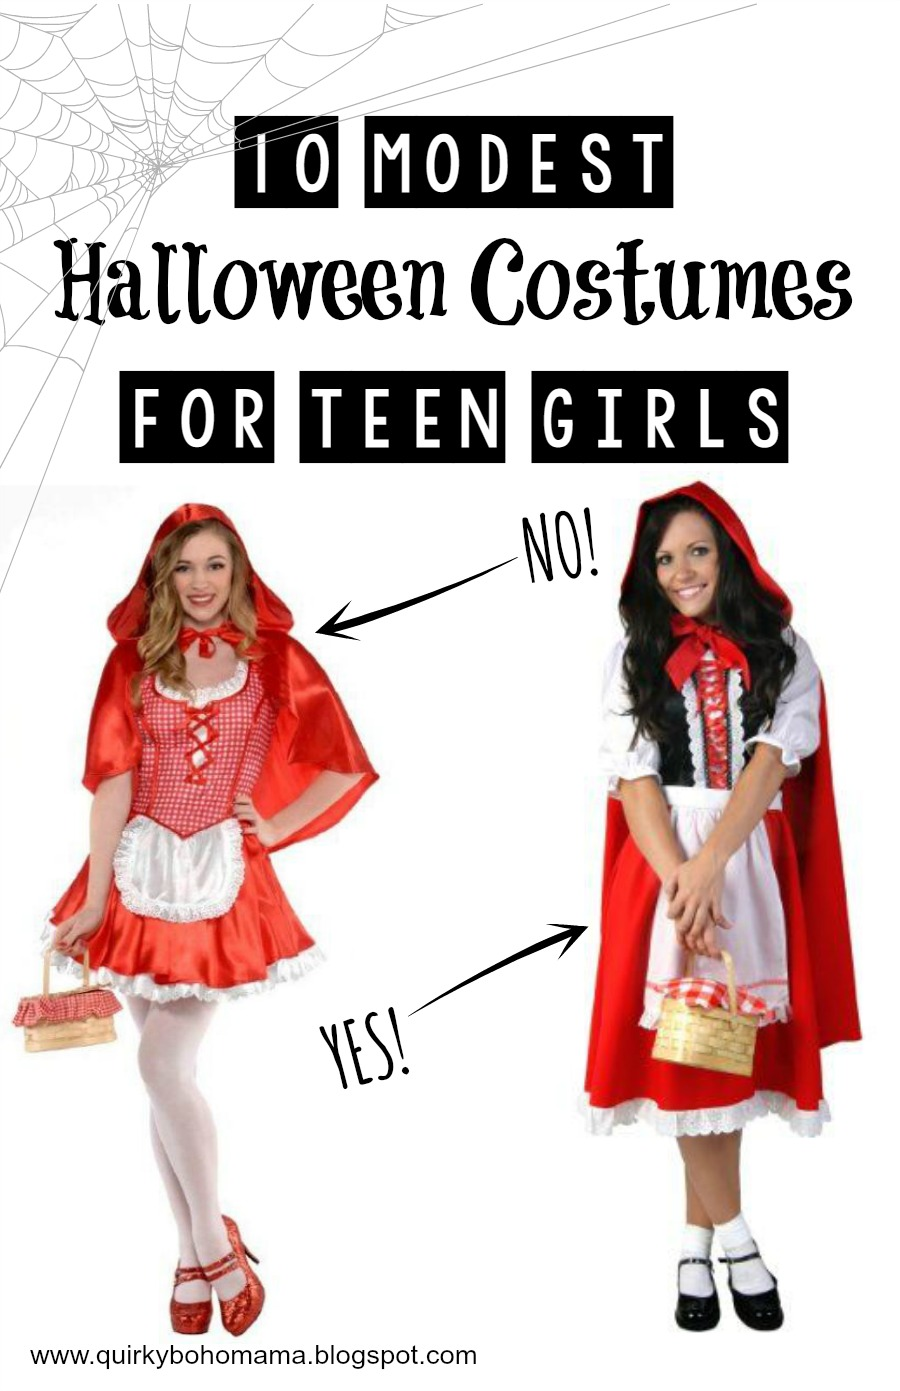 ... Halloween Costumes for Teen Girls. modest Holloween costumes  sc 1 st  Quirky Bohemian Mama & Quirky Bohemian Mama - A Bohemian Mom Blog: 10 Modest Alternatives ...